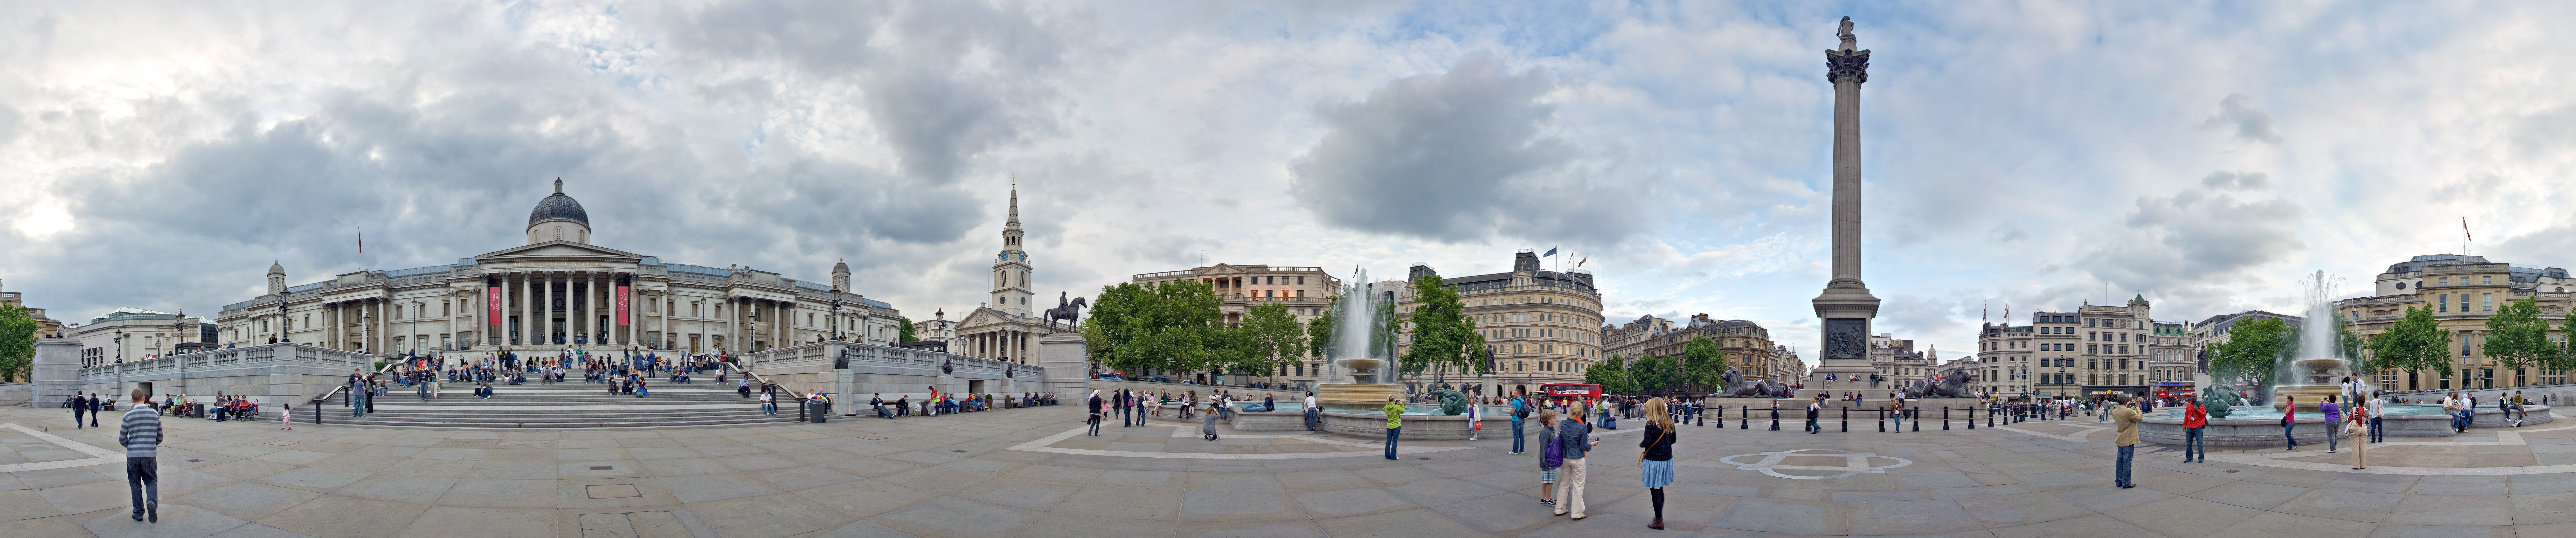 You will have your own studio apartment at the Hotel Citadines Trafalgar  Square!